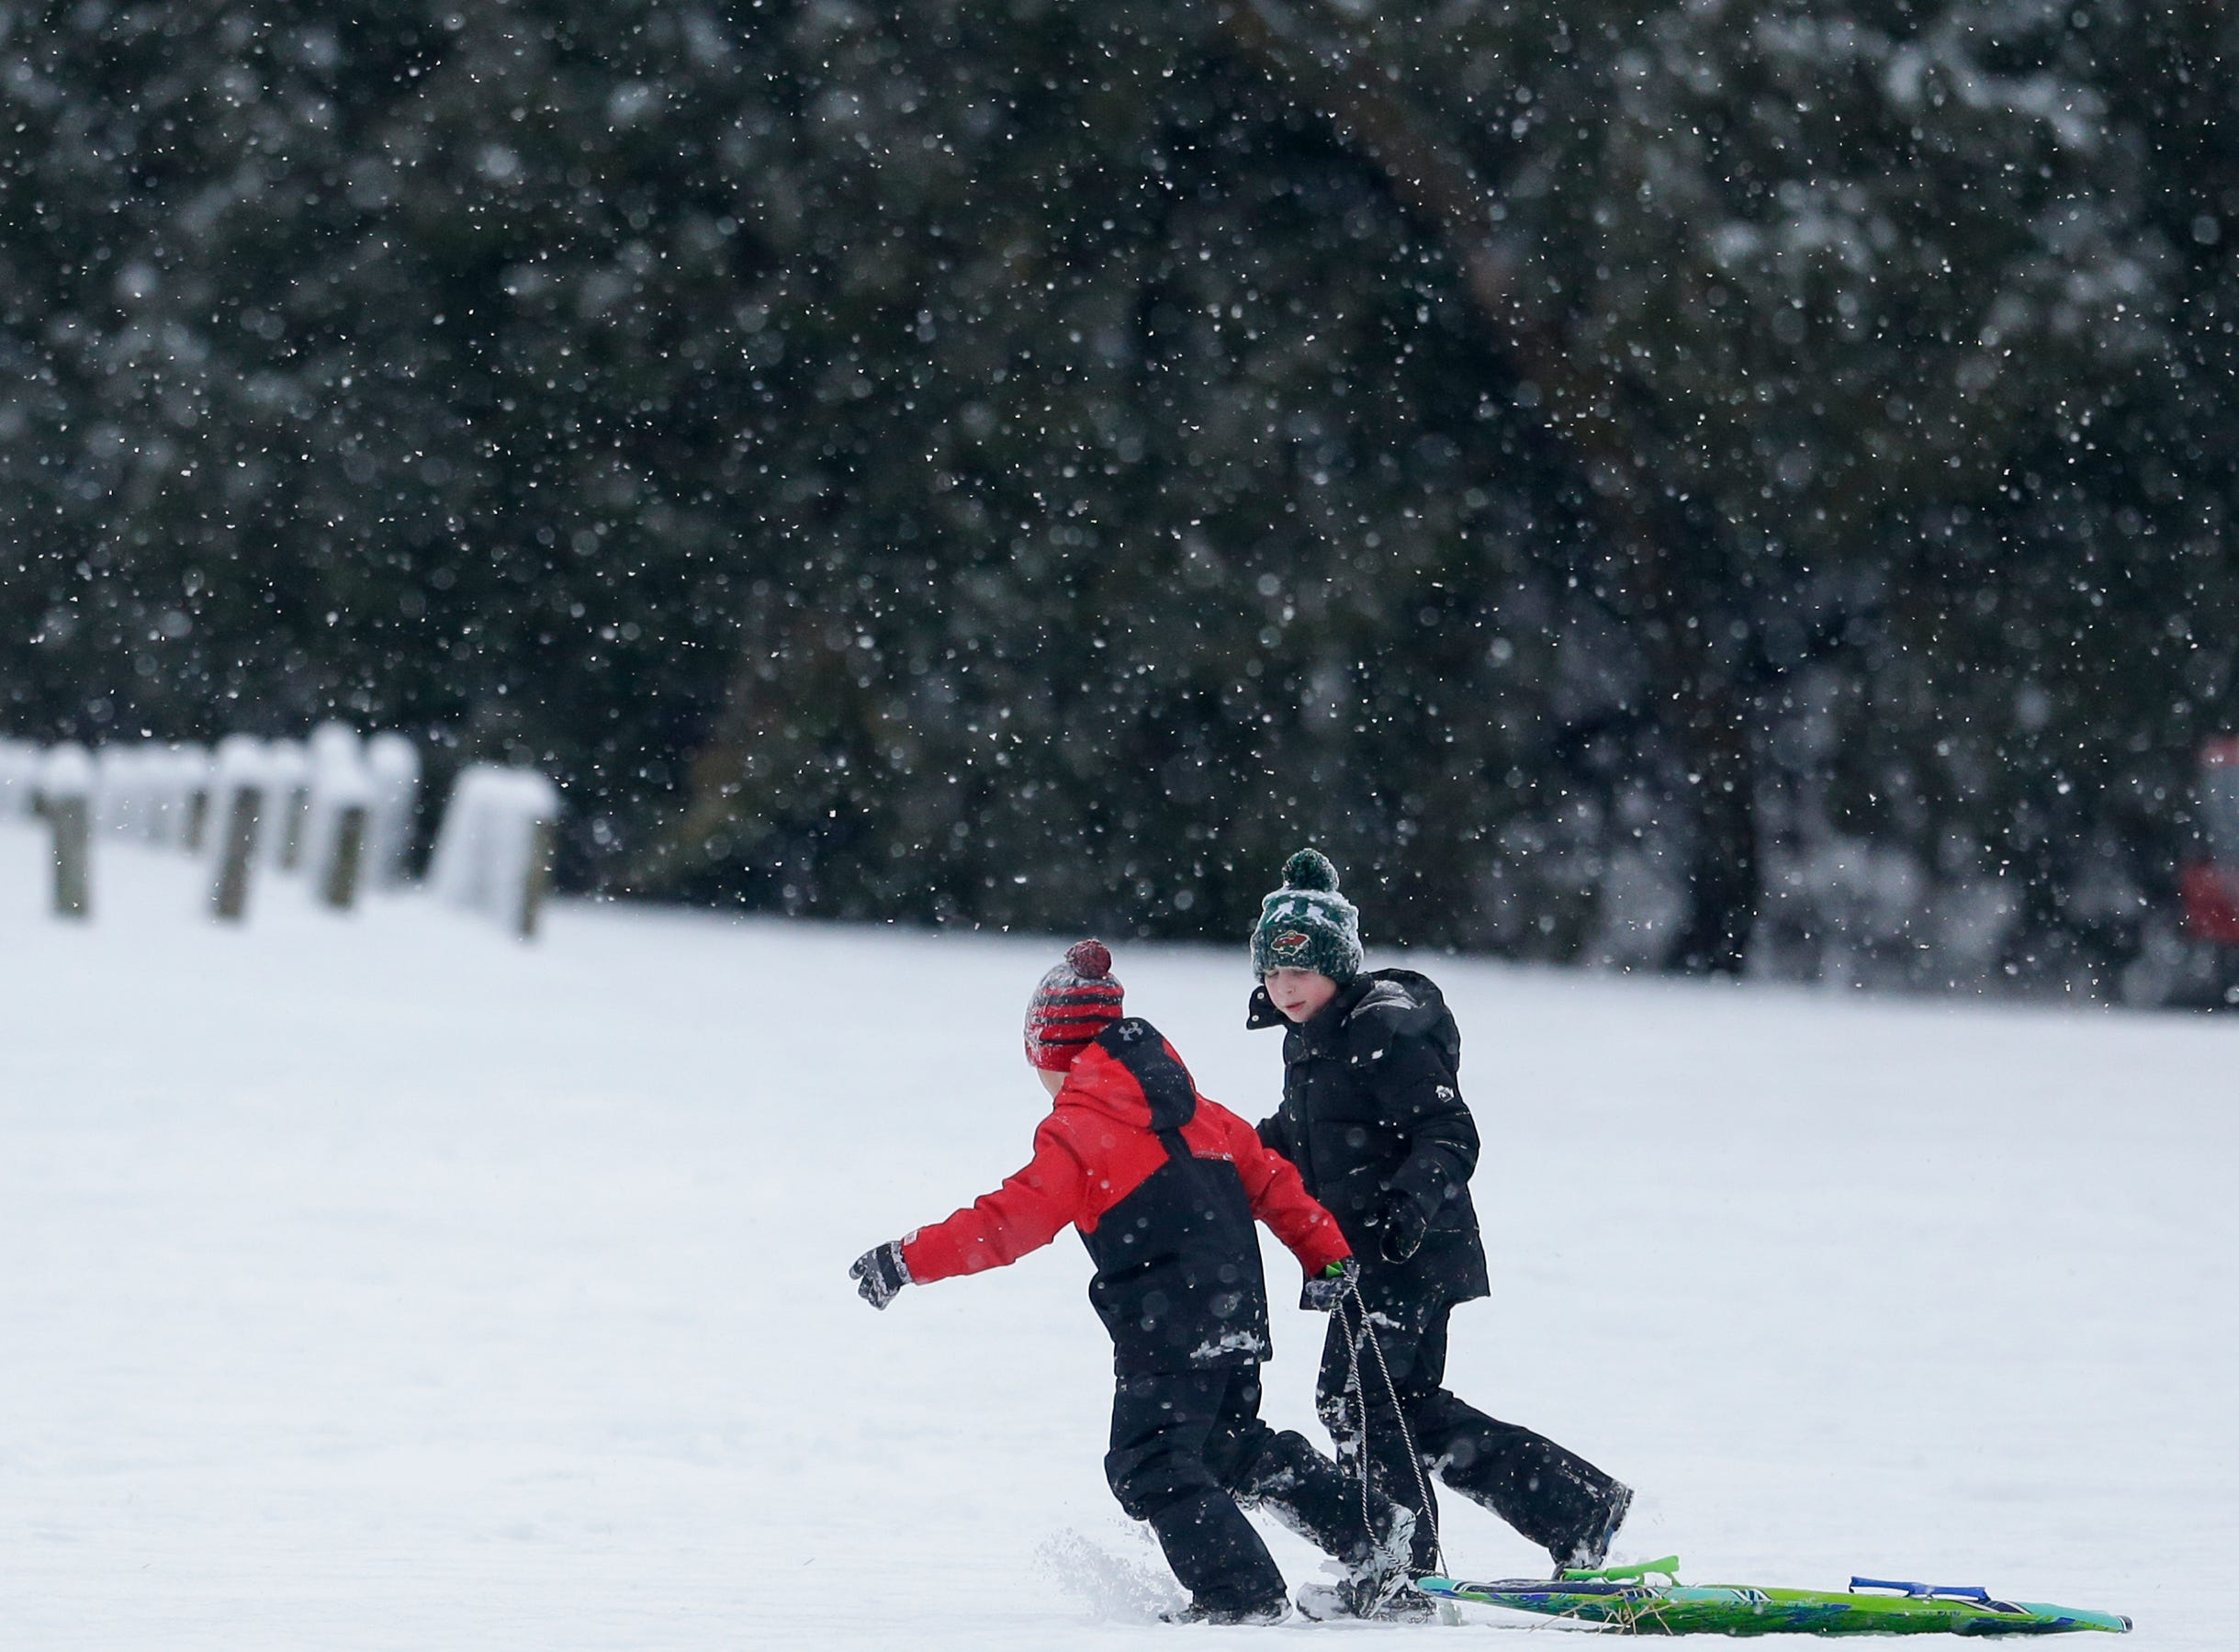 Miles Rice, 7, and Padraic Dunn, 7, run their sled back up the hill at Silver Creek Park during a snowfall Wednesday, January 2, 2019, in Manitowoc, Wis. Joshua Clark/USA TODAY NETWORK-Wisconsin